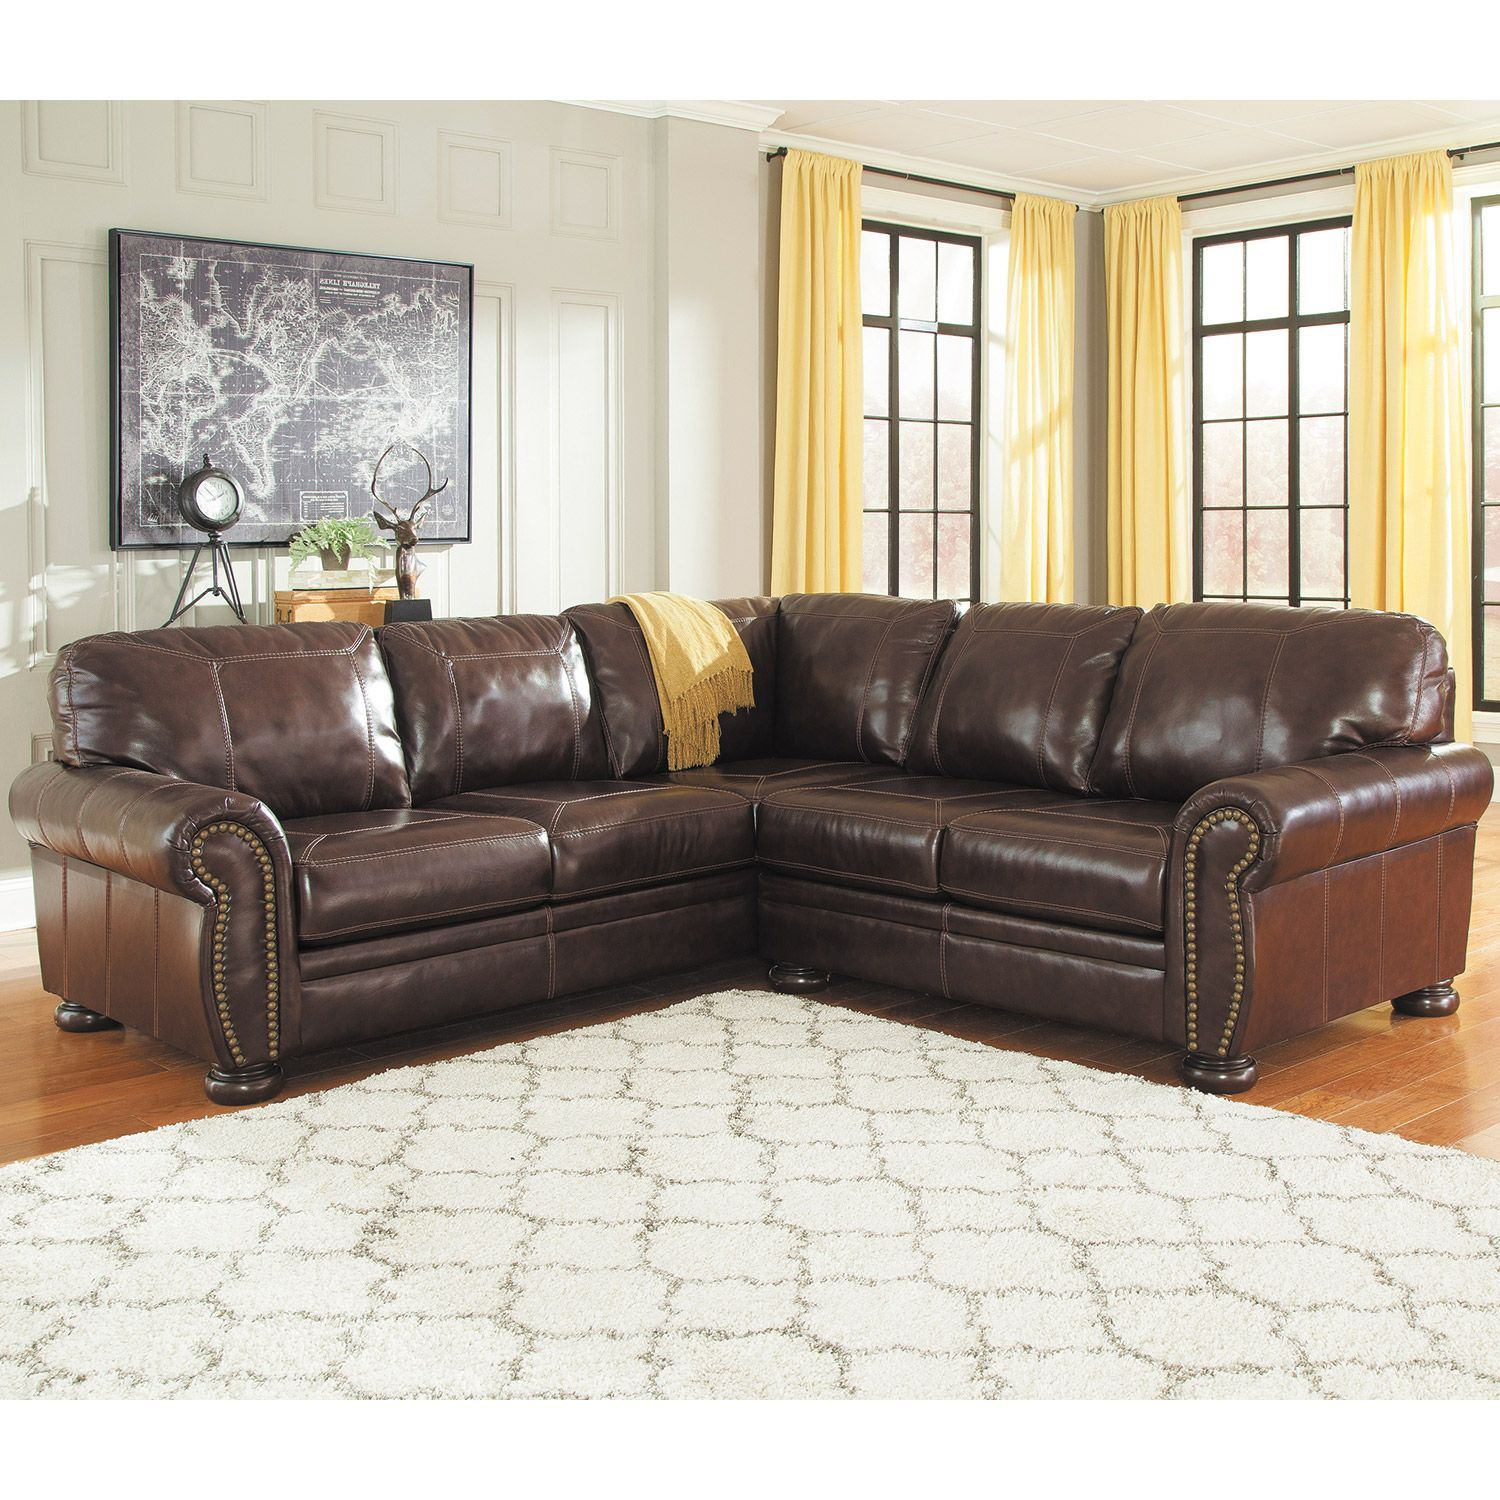 Ashley Leather Sofa: 2PC LAF Sofa Leather Sectional 0H0-504LS-2PC